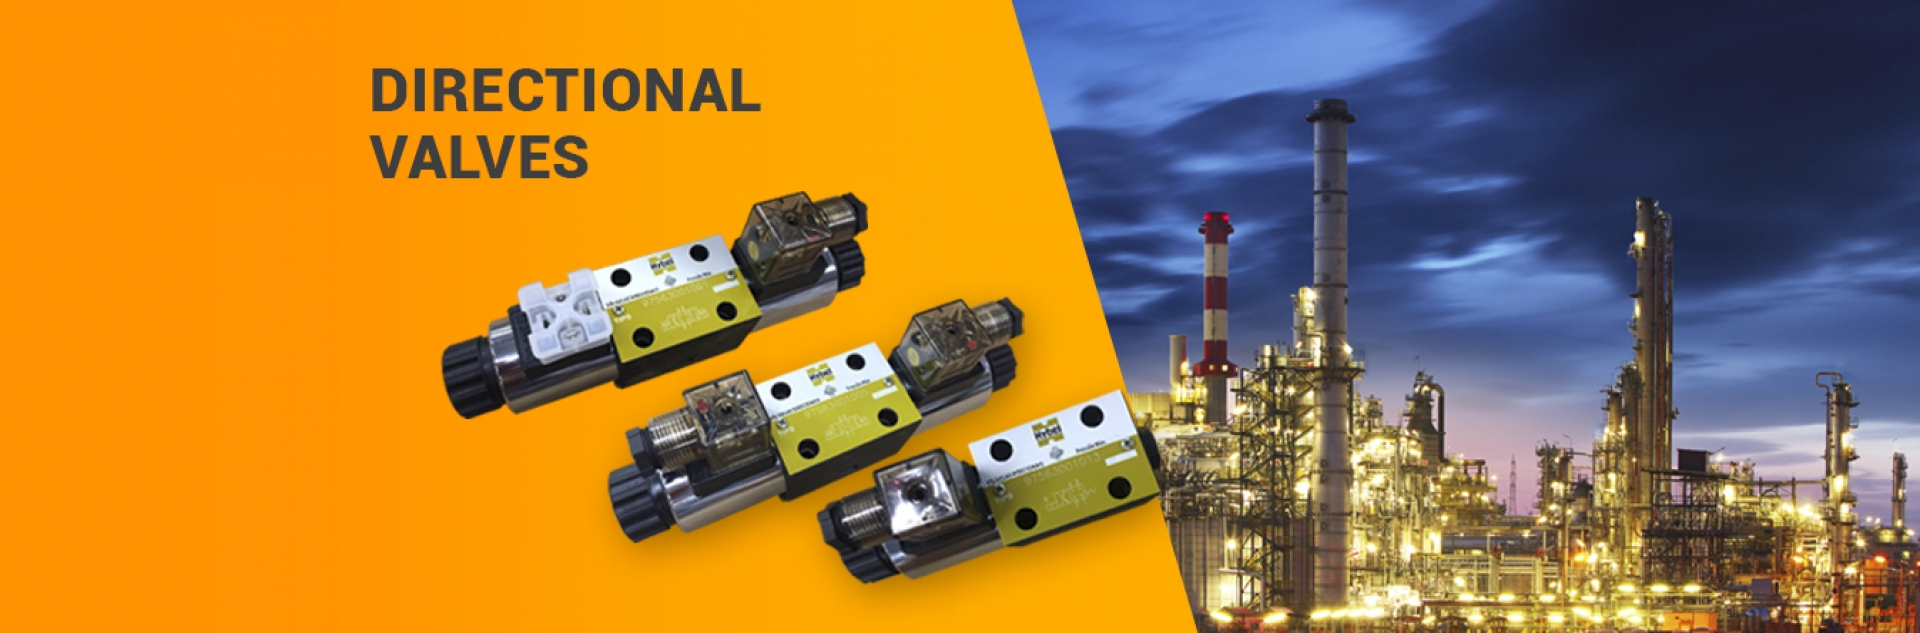 Directional Valves